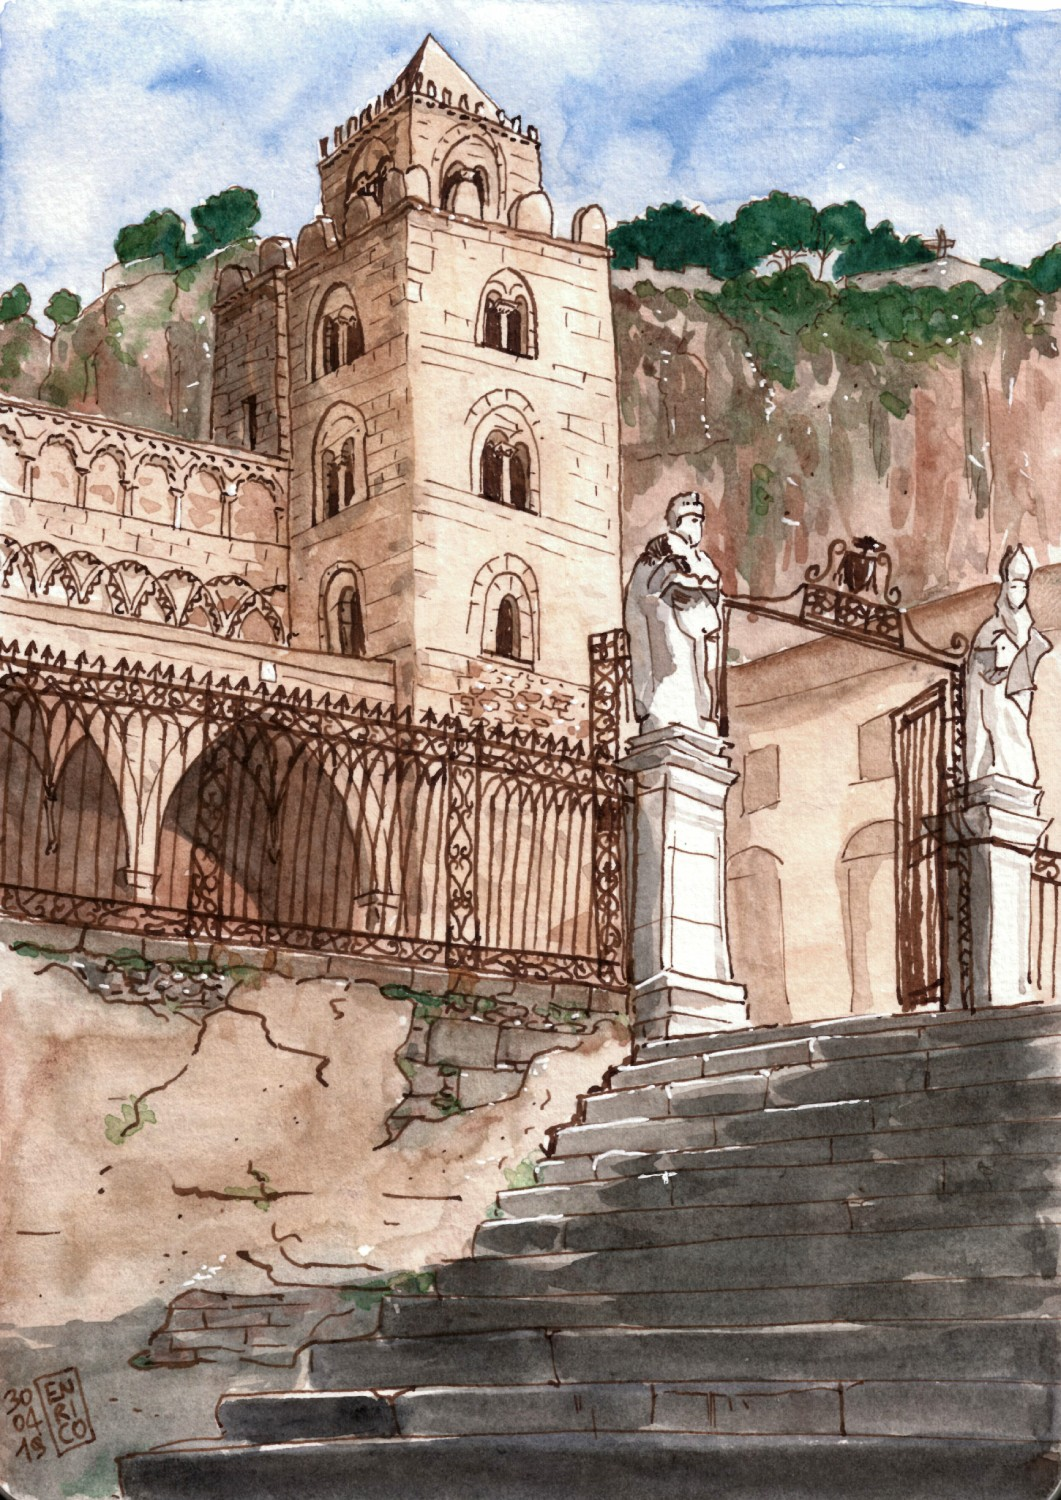 Cefalù is definitely one of my favorite places on Earth. This is its Cathedral. Instead of visiting the interior with my friends and climbing the towers, I preferred sitting under the sun outside and sketch it (the t-shirt collar gave me a funny tan line on the neck)